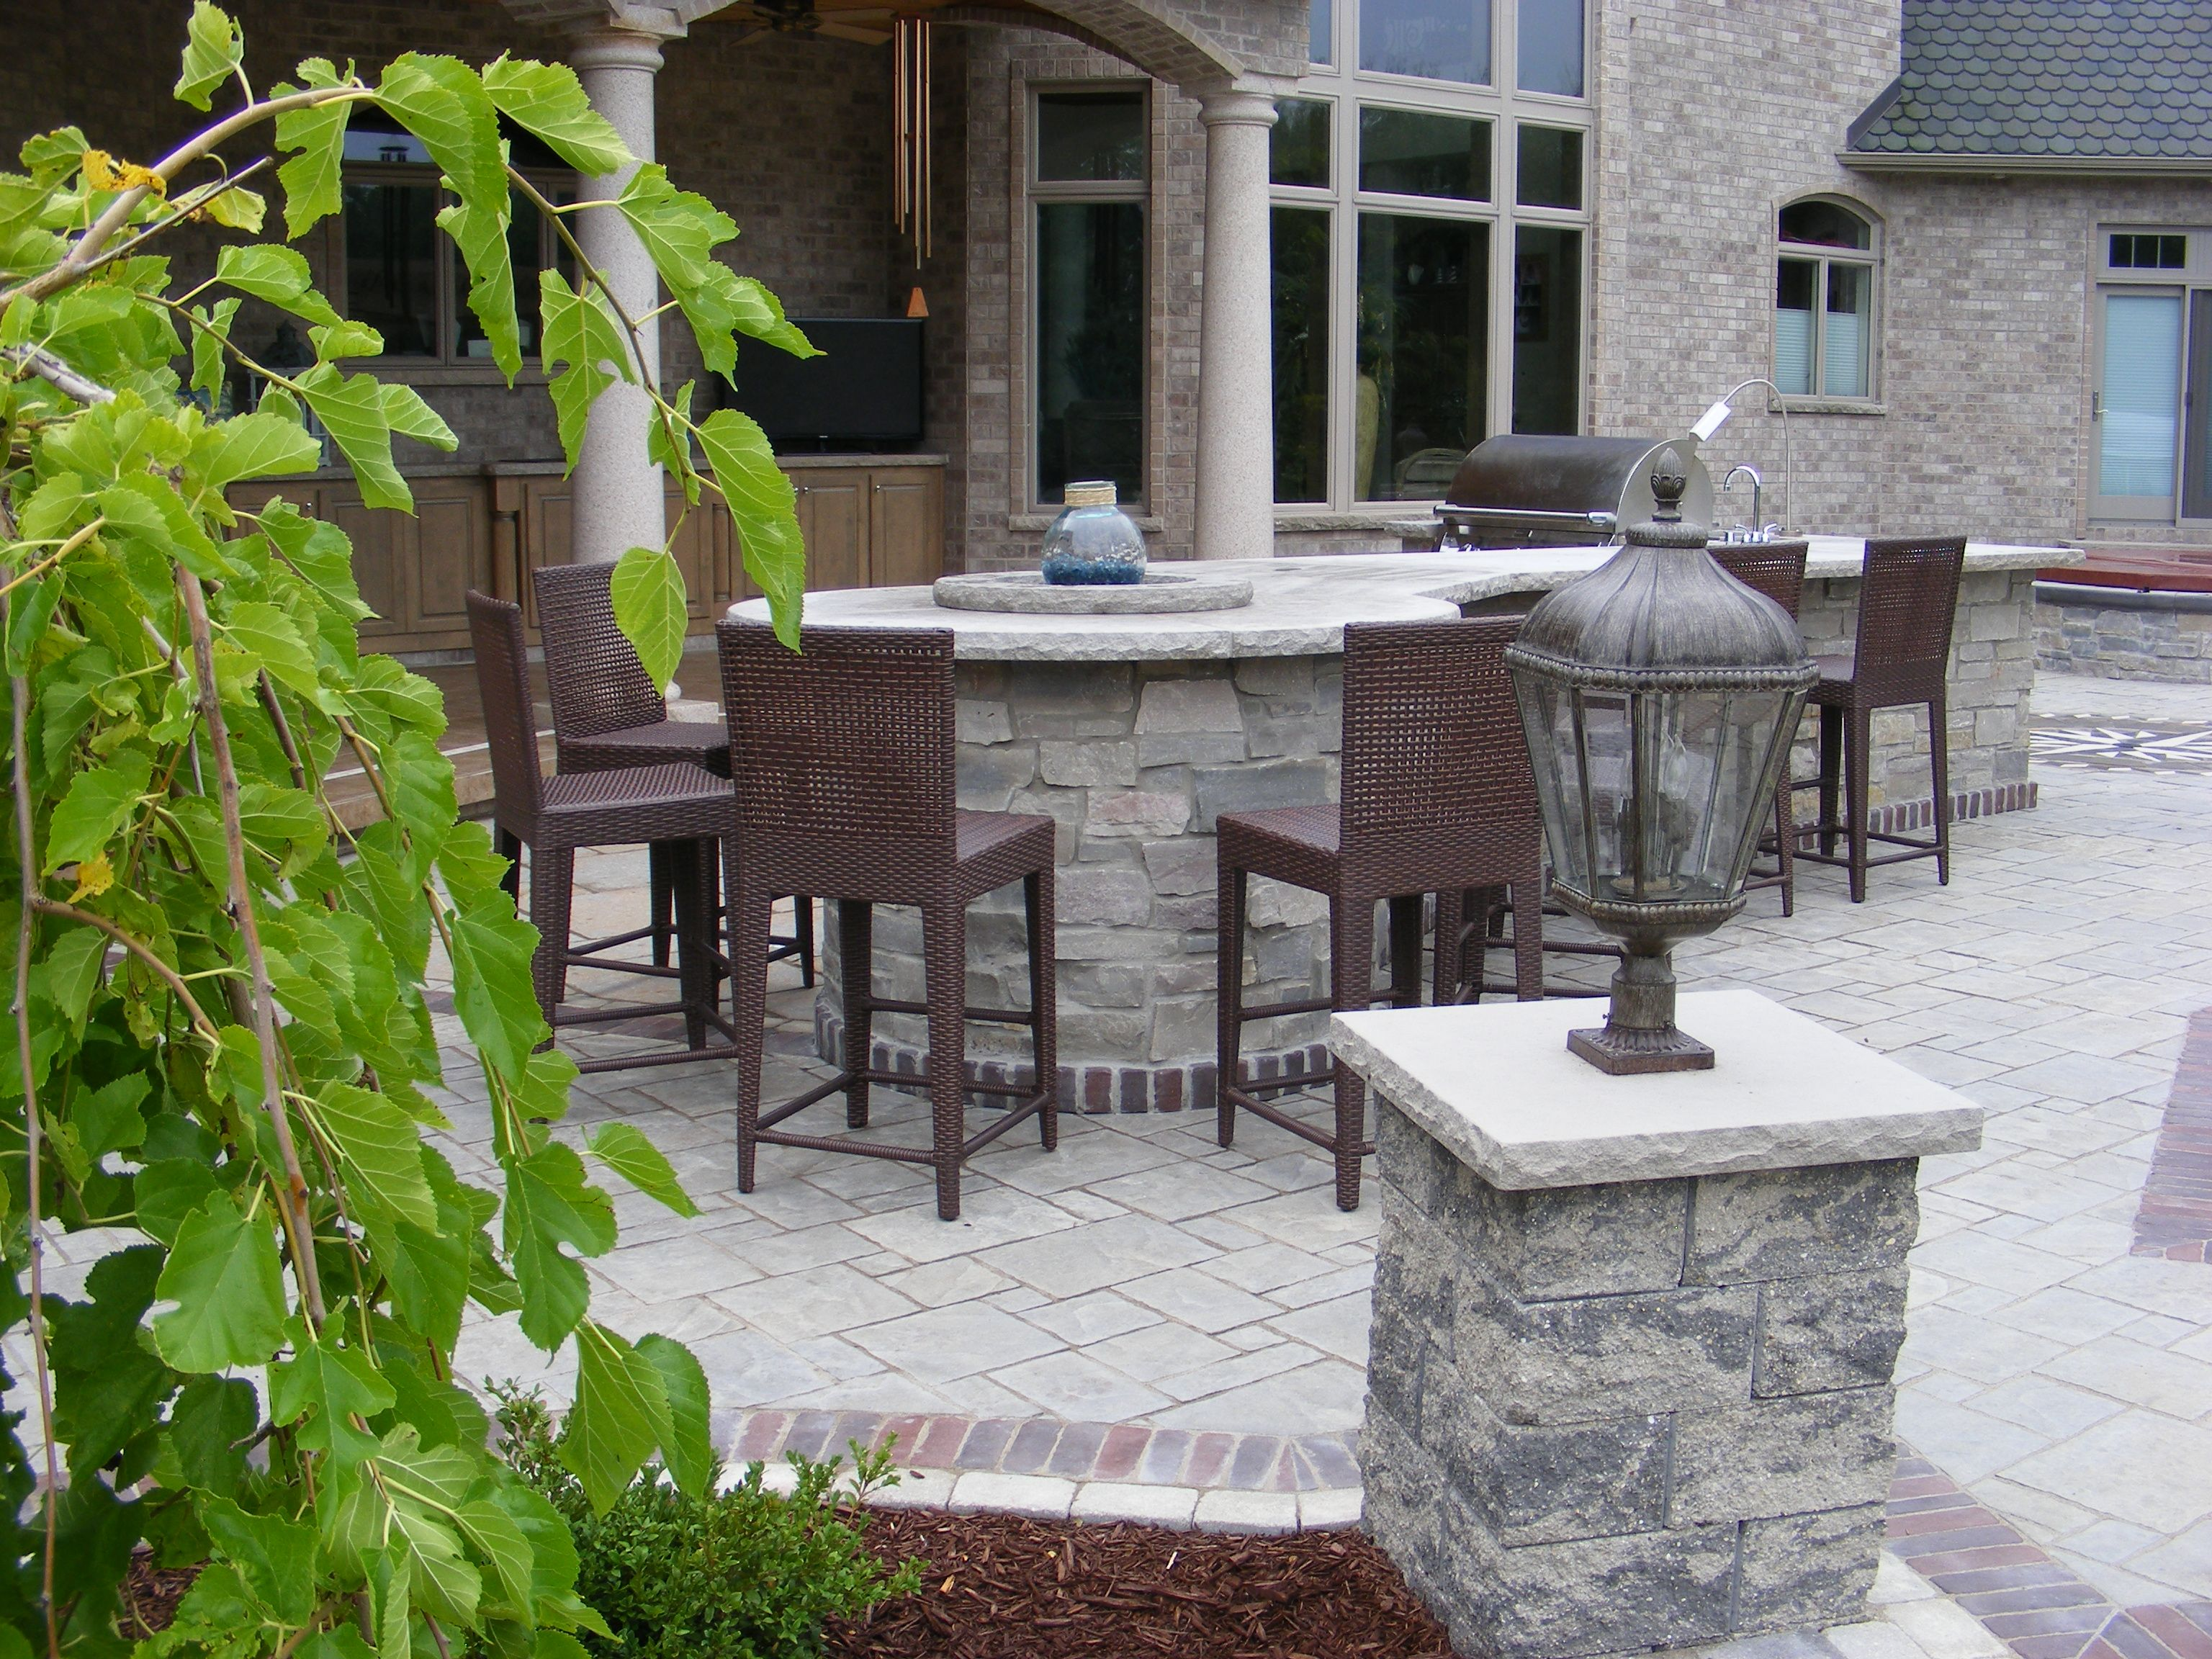 Delightful Limestone Counter Tops, Natural Stone Veneer, Paver Patio, Pillars, Outdoor  Bar